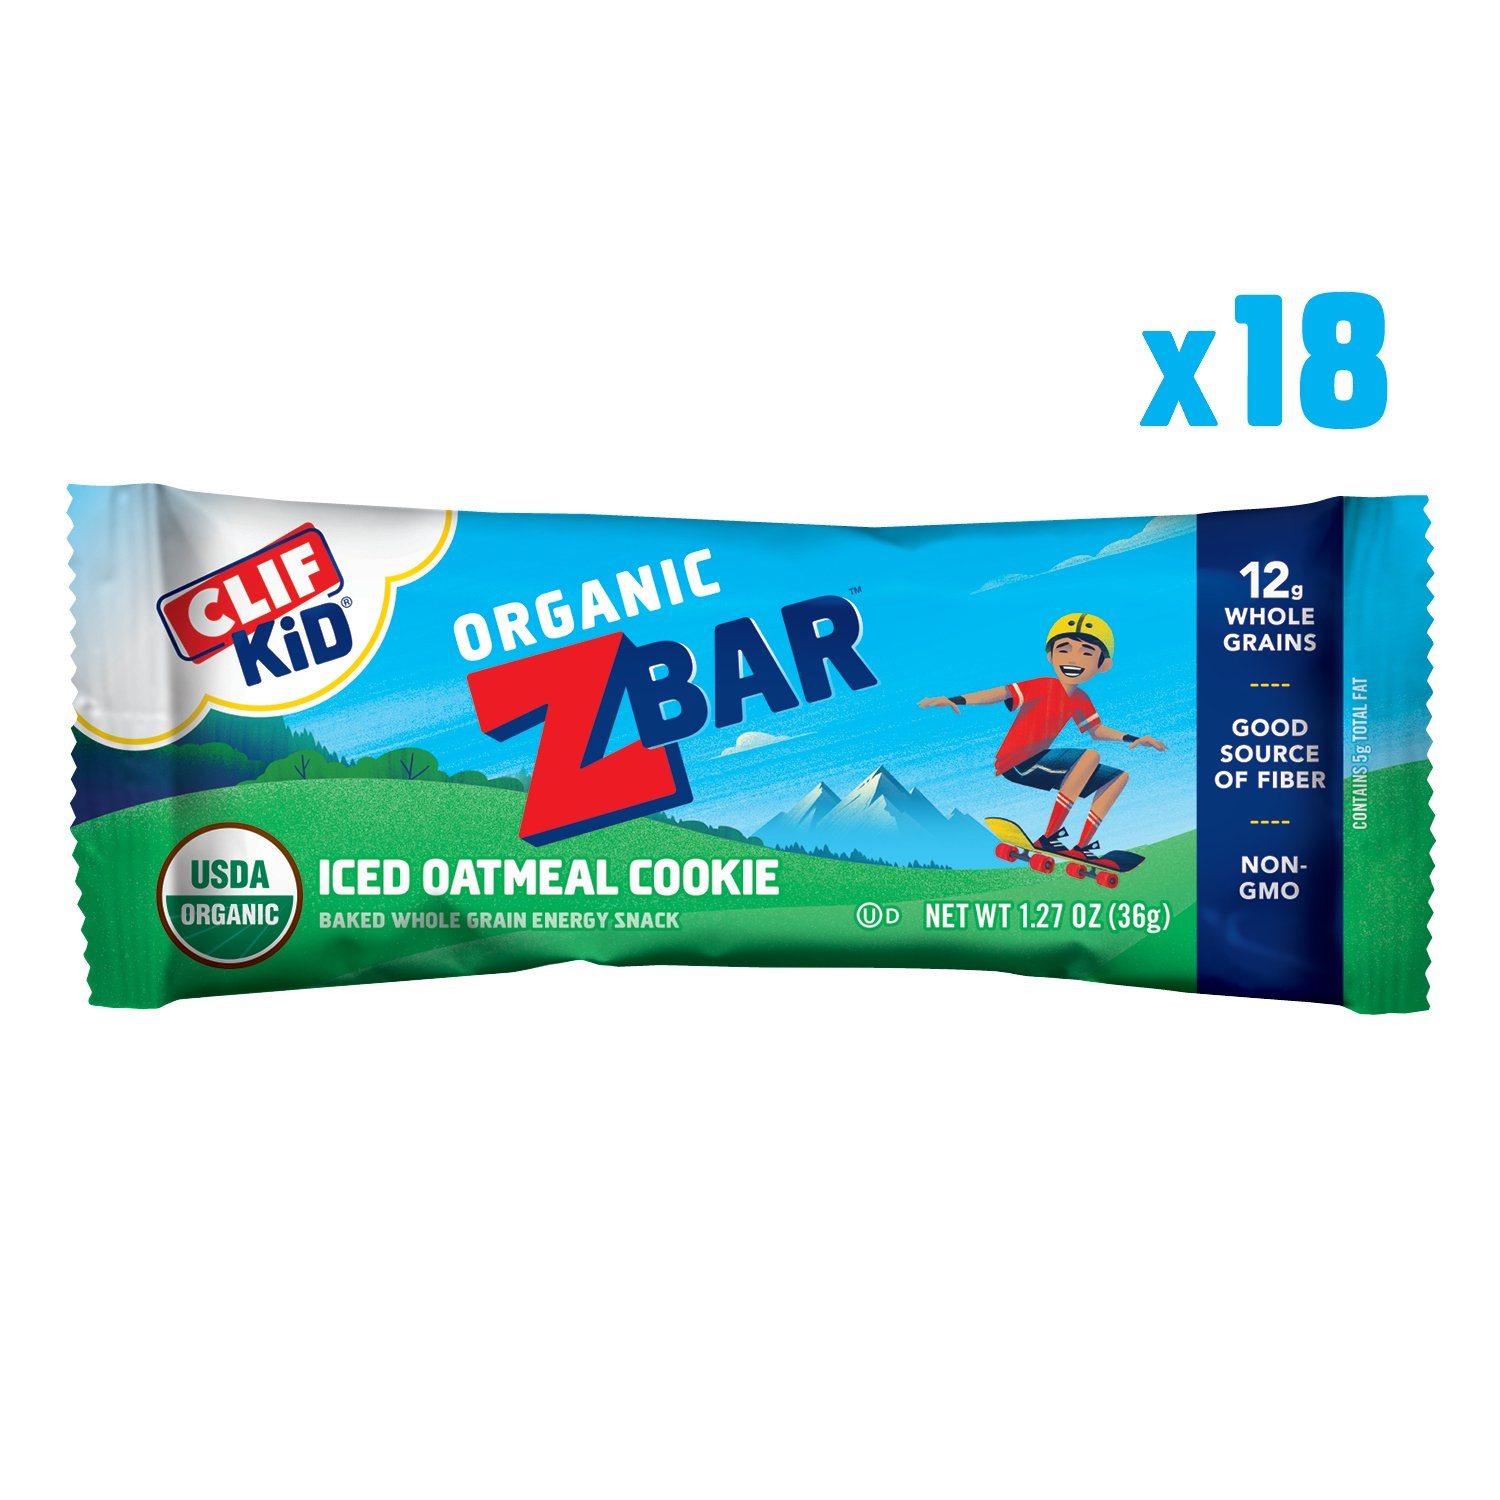 CLIF KID ZBAR - Organic Energy Bar - Iced Oatmeal Cookie - (1.27 Ounce Snack Bar, 18 Count)